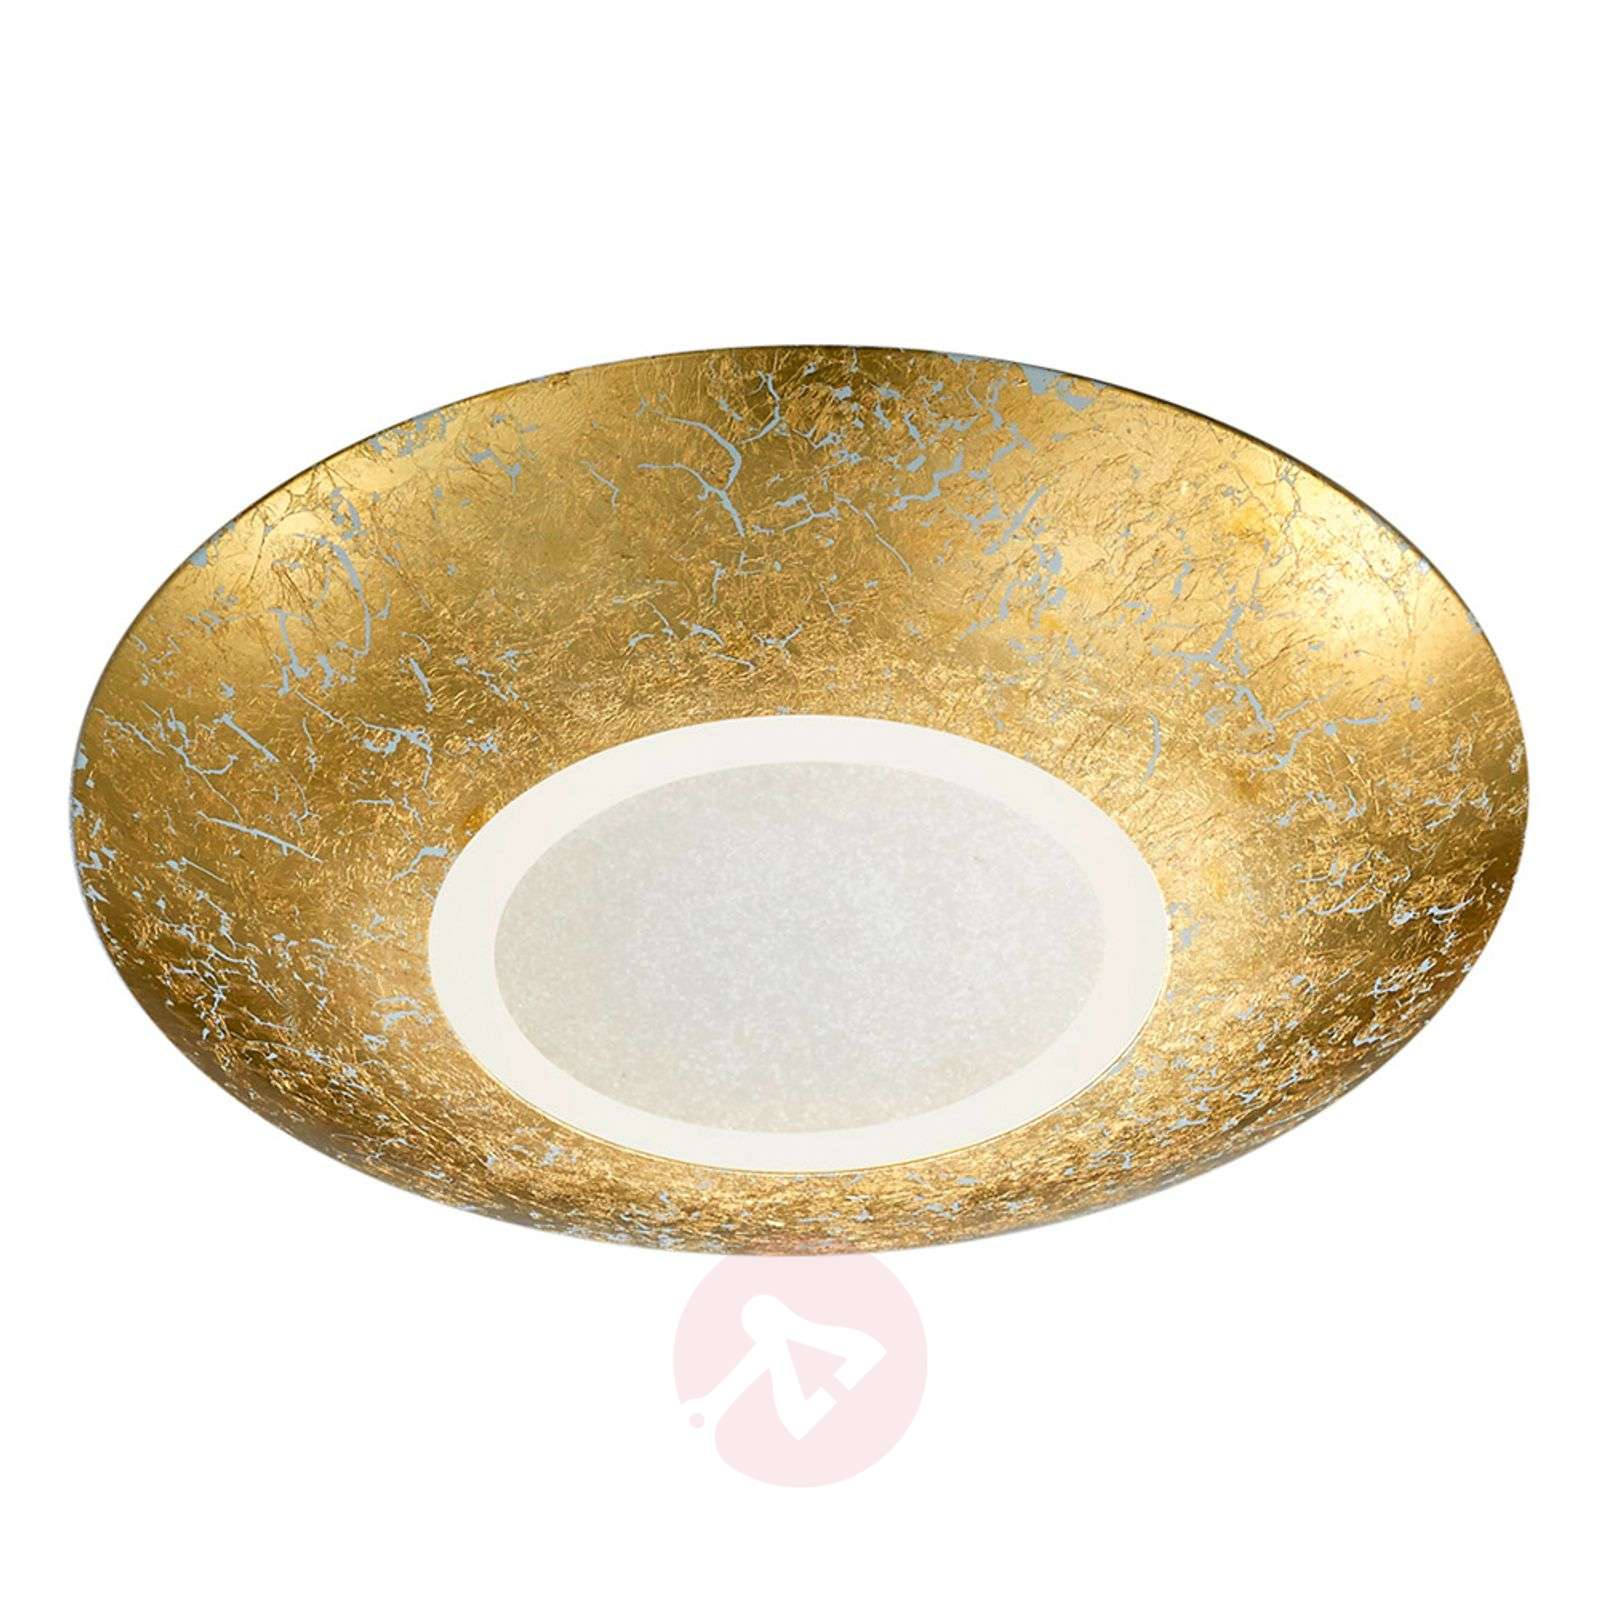 LED ceiling lamp Chiros Round Gold colour-9005259-01